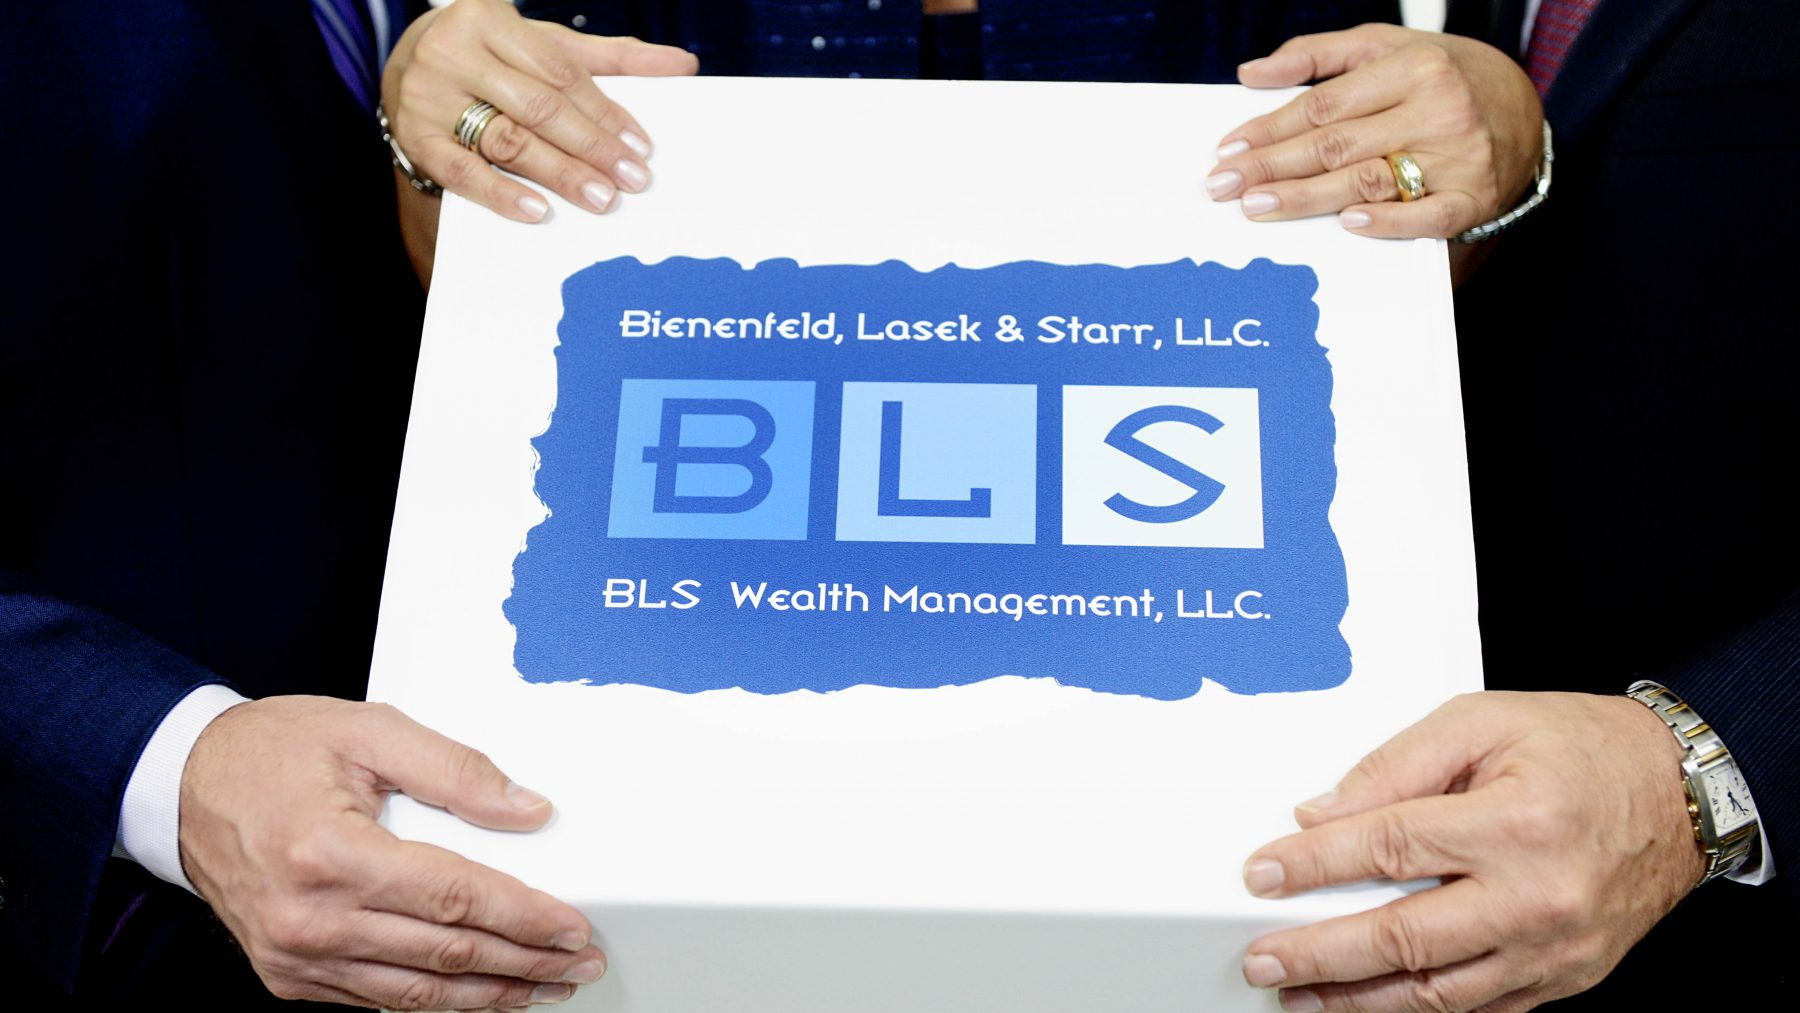 Business Team Corporate Photography / BLS Wealth Management, LLC